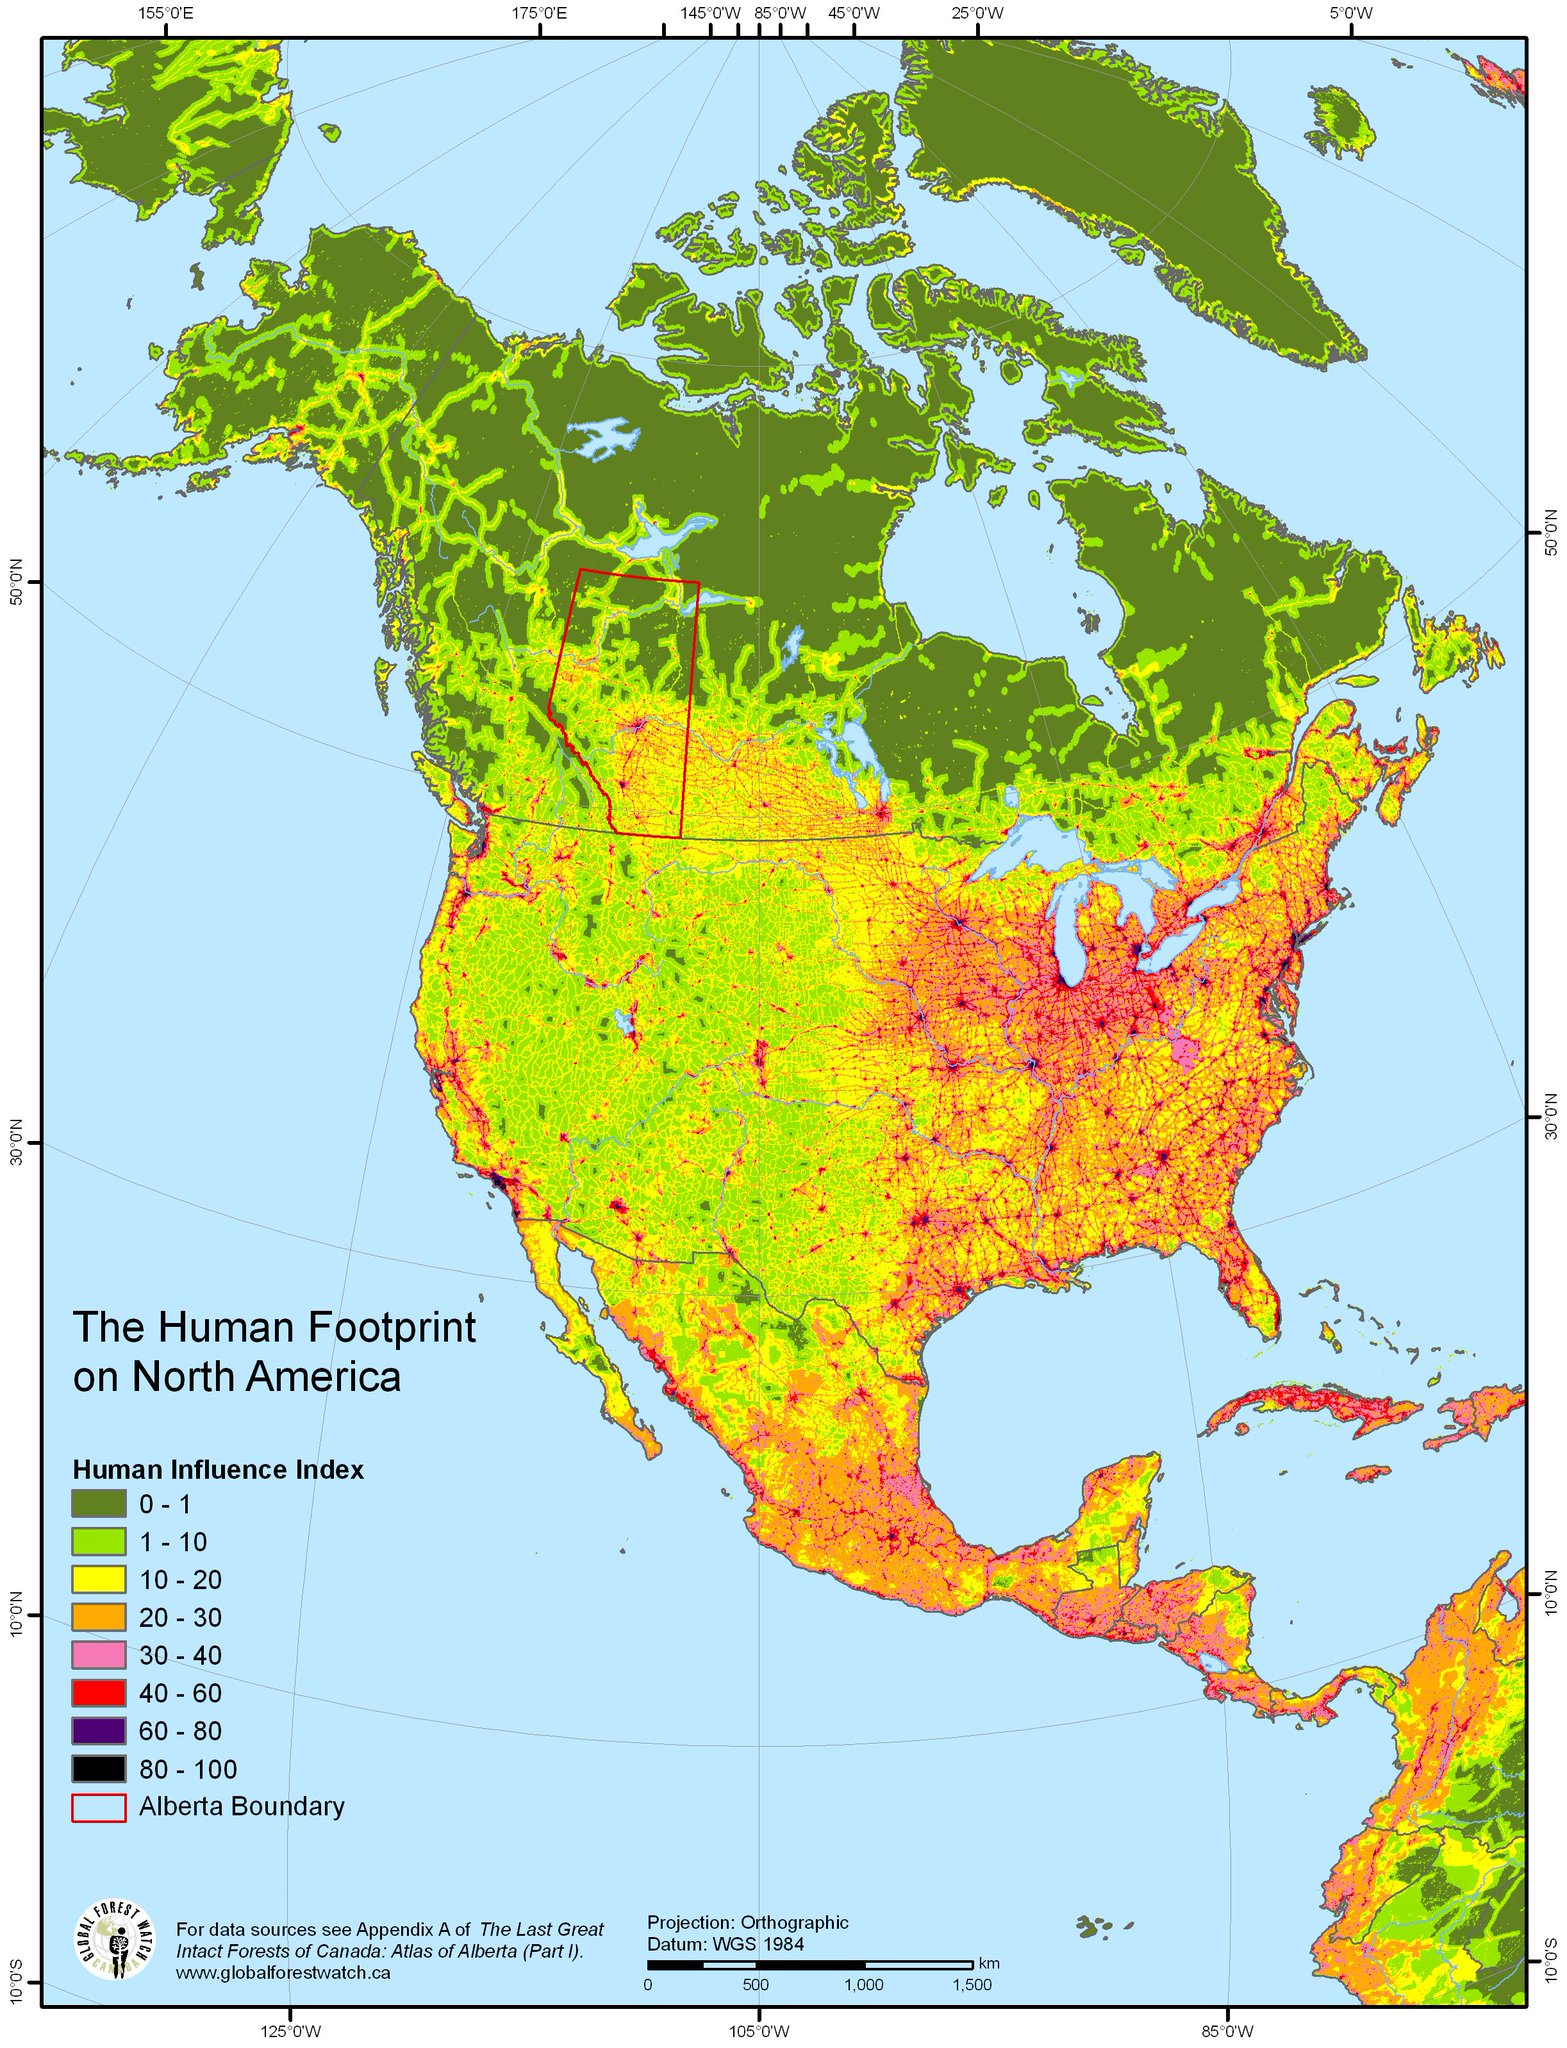 The Human Footprint in North America  #map #maps https://t.co/p9W7FXo33q